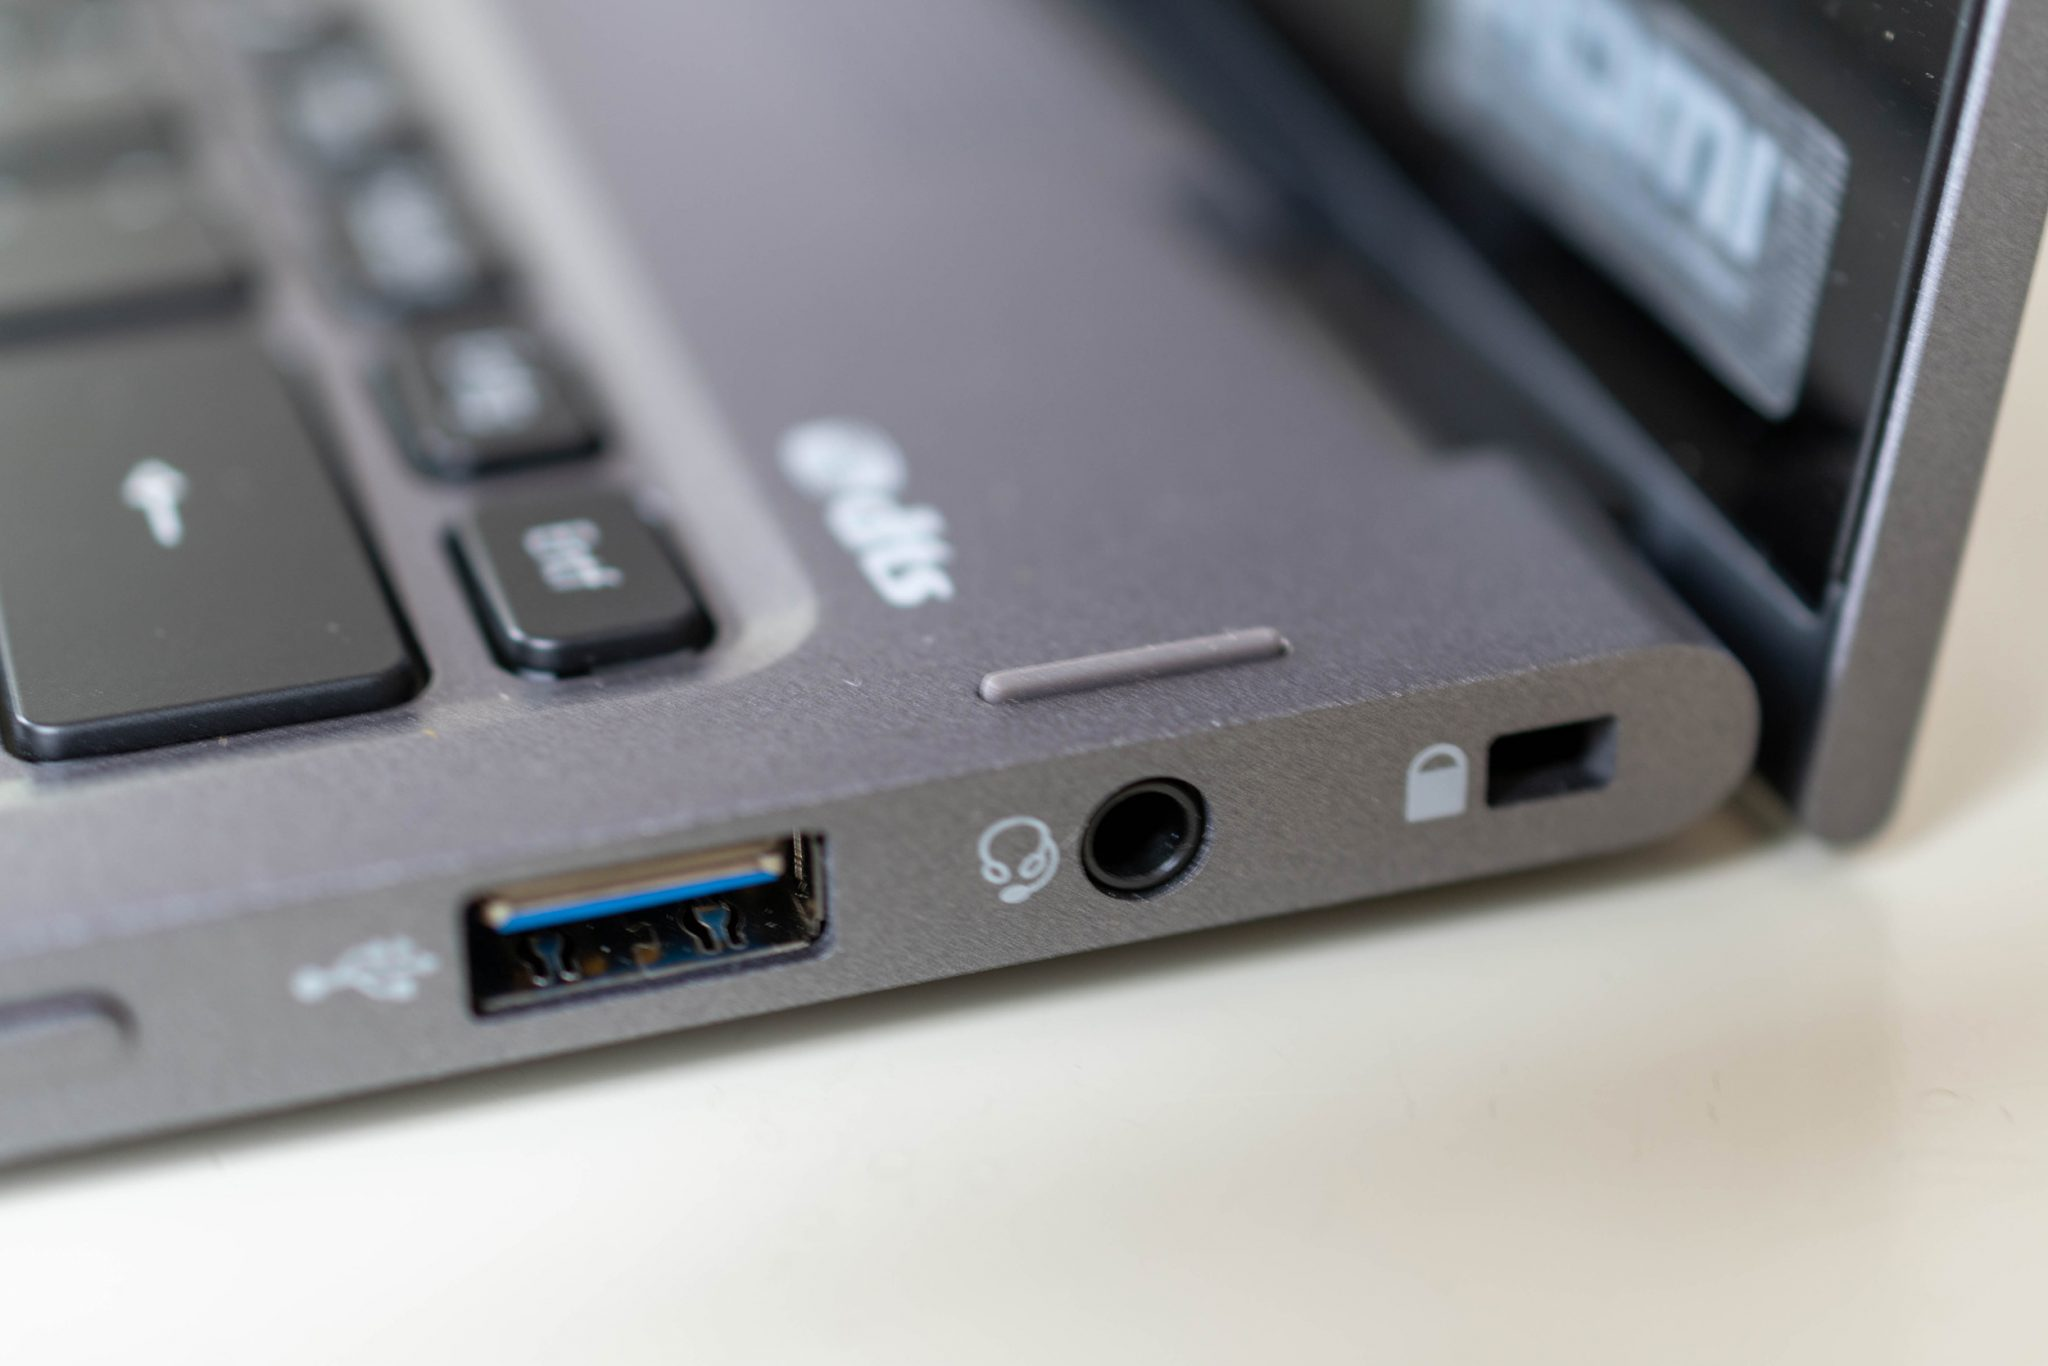 Acer Spin 5 ports